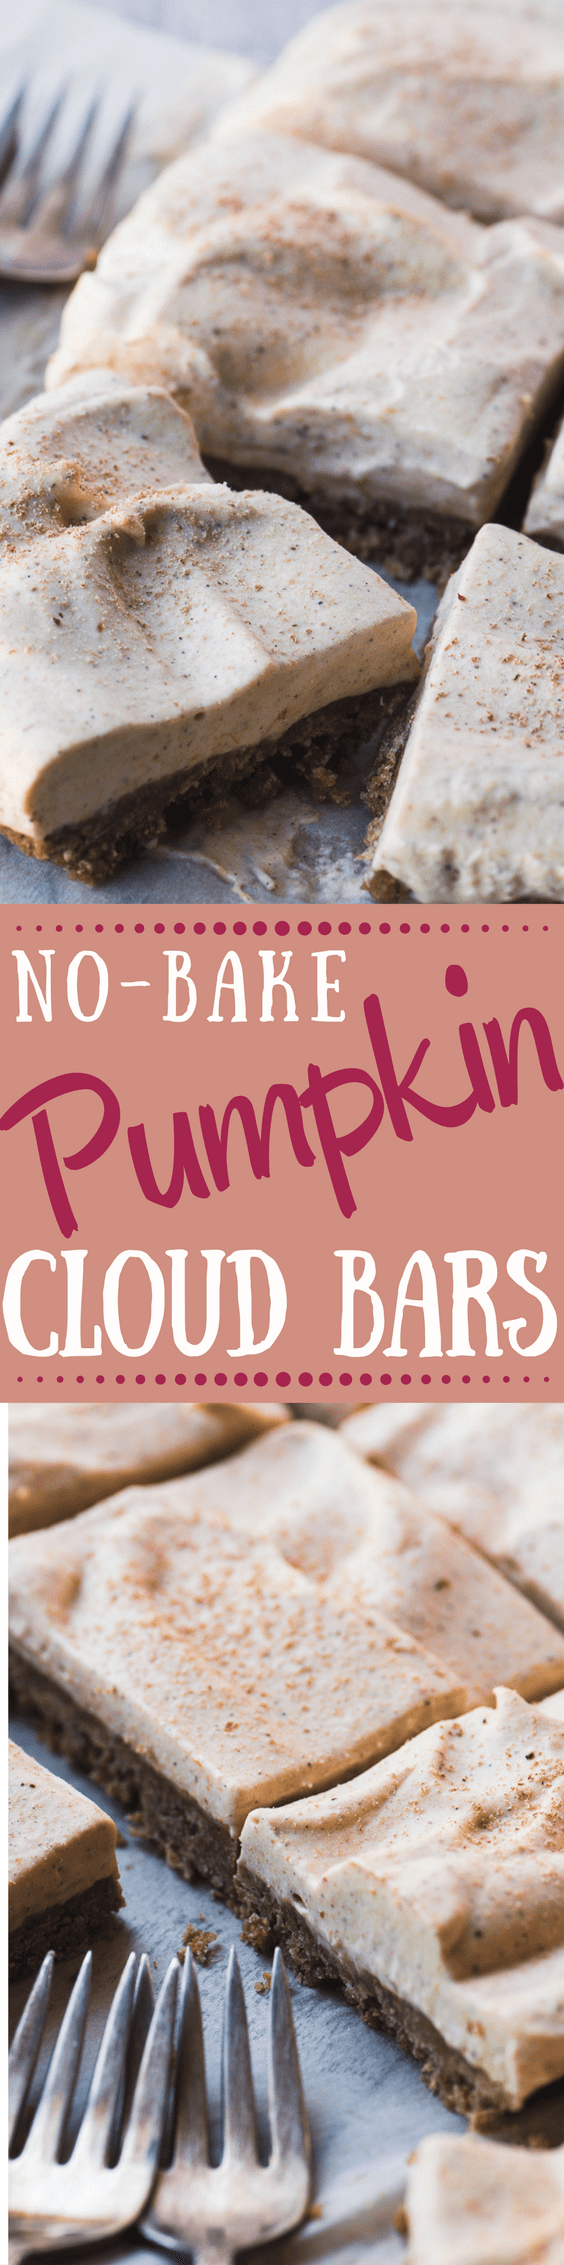 No Bake Pumpkin Cloud Bars ~ this whisper light pumpkin dessert with its spiced graham crust and fluffy pumpkin topping is perfect after a heavy meal! #pumpkindessert #nobake #nobakepumpkin #bestpumpkinbars #pumpkinbars #dessert #pumpkindessertrecipe